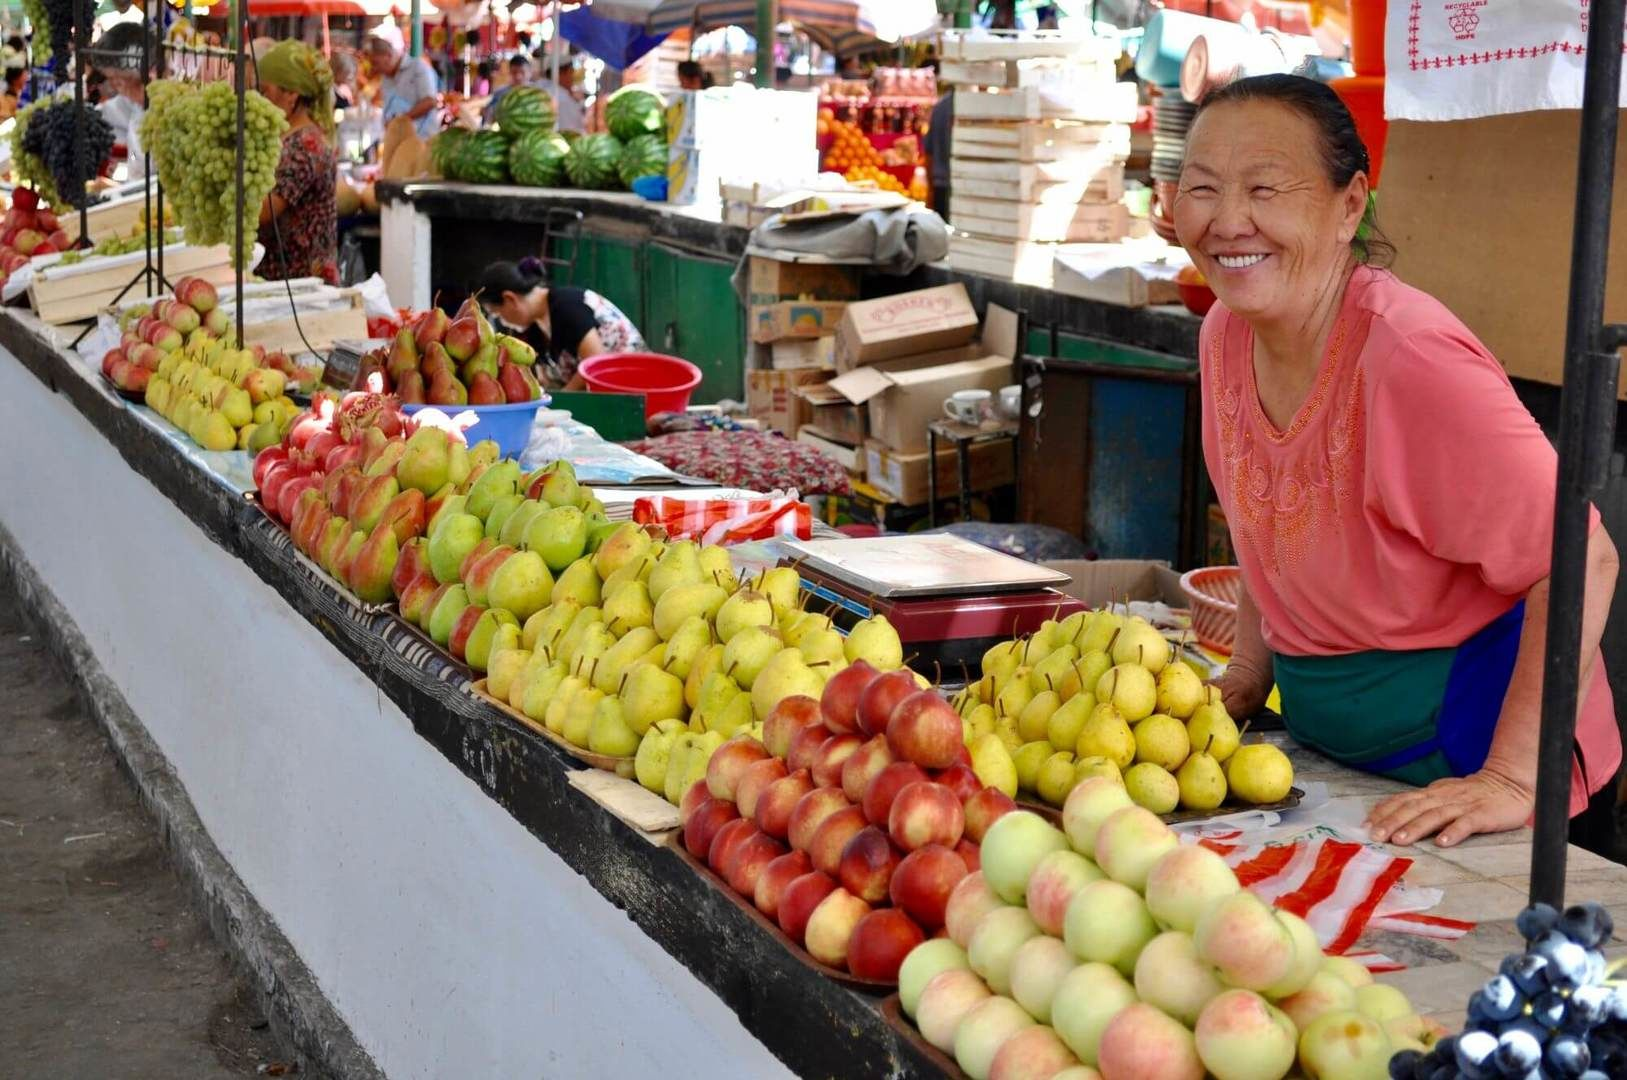 Fruits in bazaar sold by friendly lady, shopping in osh bazaar during Kyrgyzstan Tours